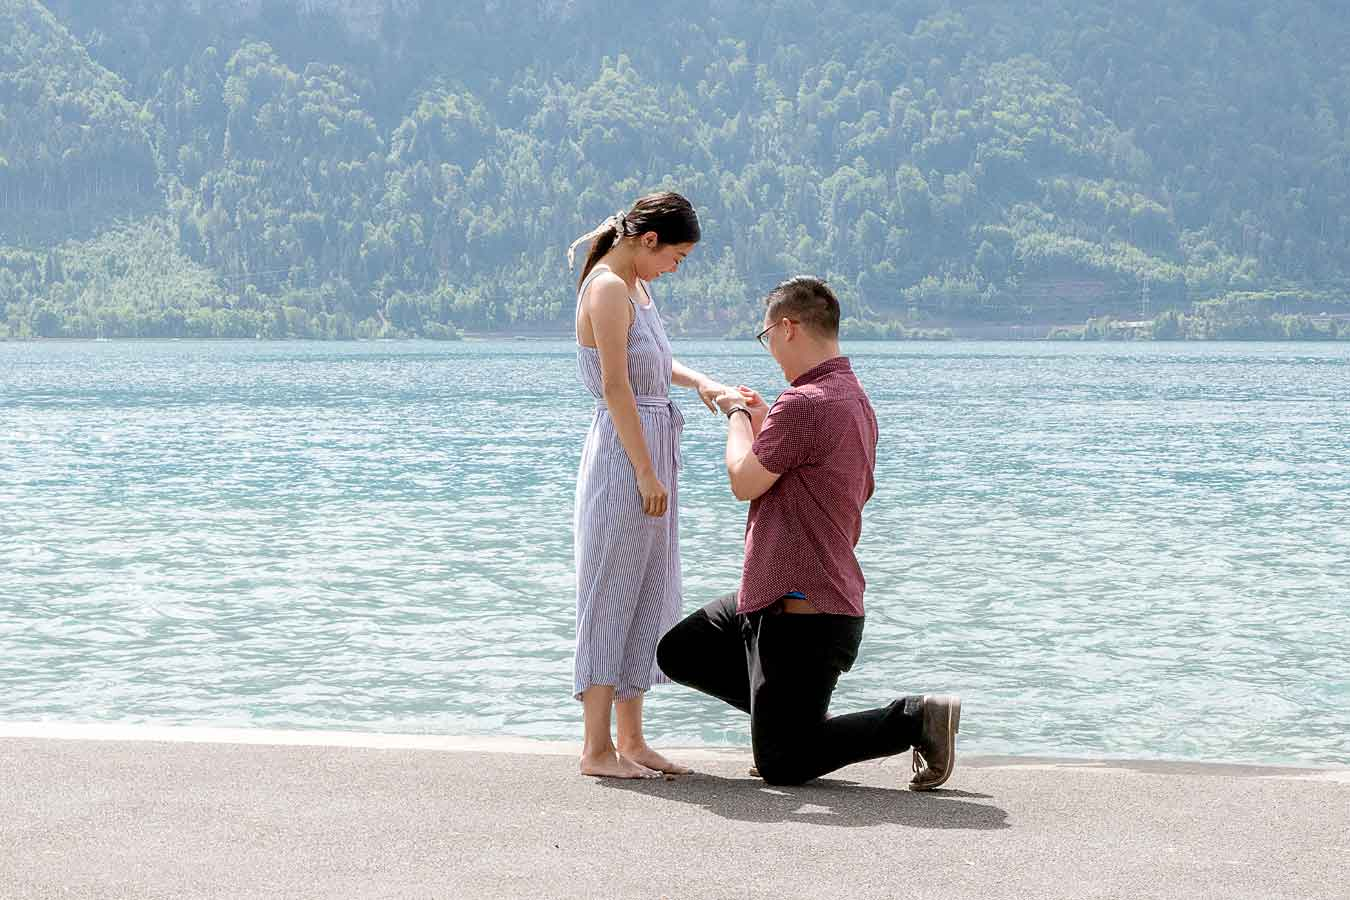 Surprise wedding proposal at lake Thun